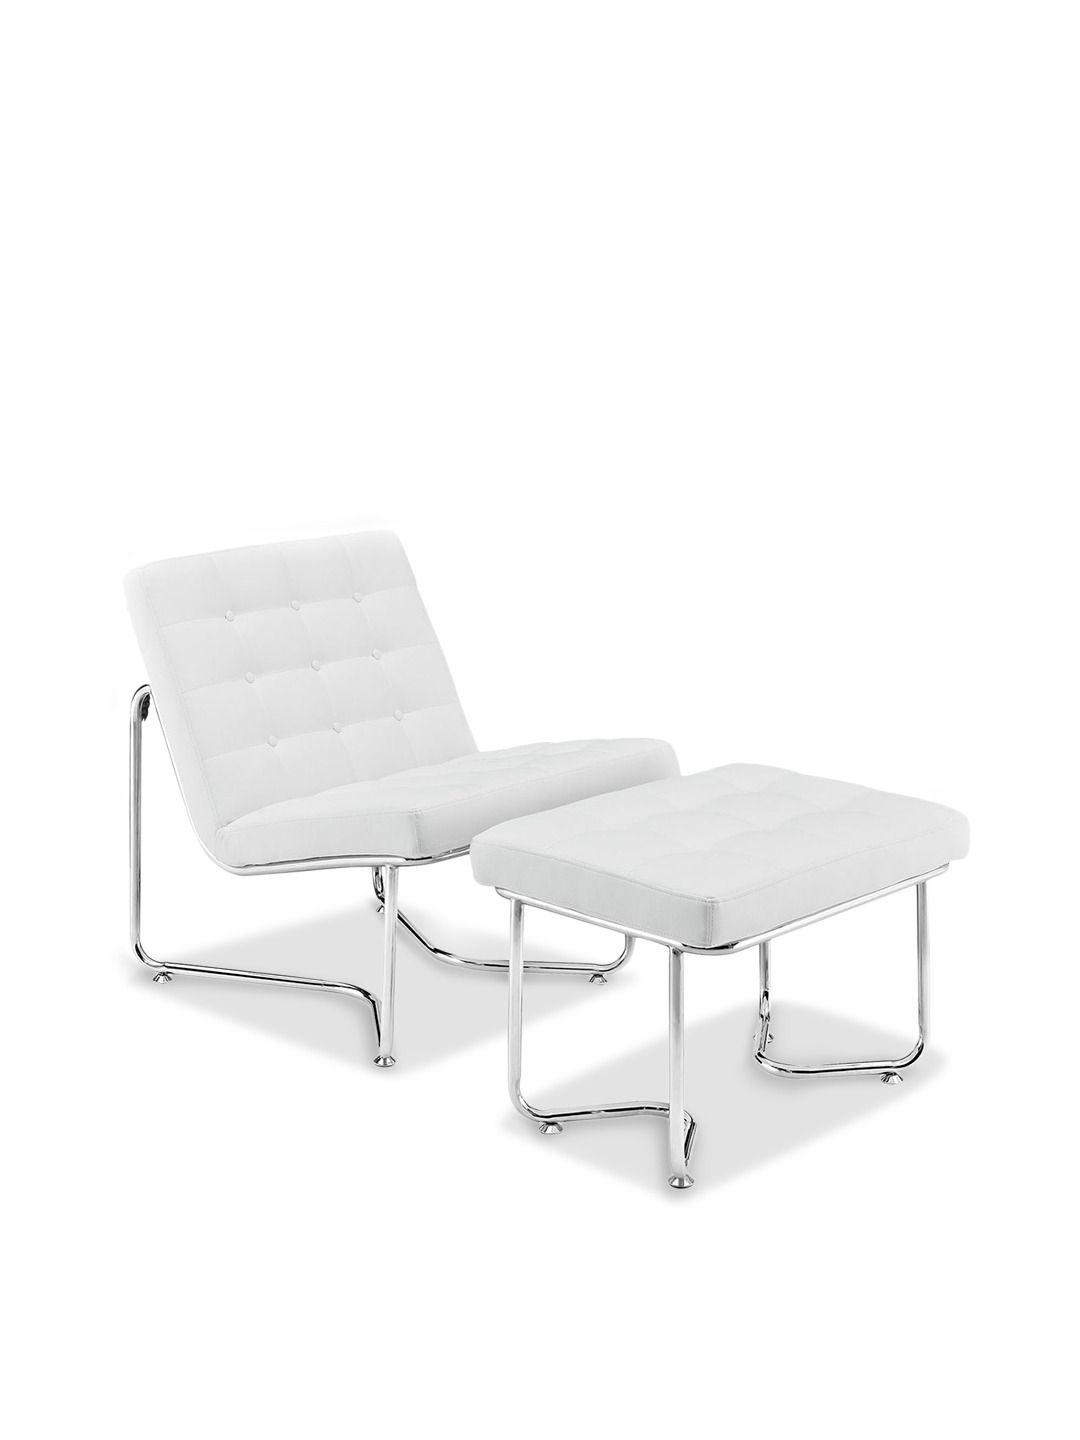 pearl river modern ny - this looks so comfy i would want it in a different color rivers ripplechaise by pearl river modern ny